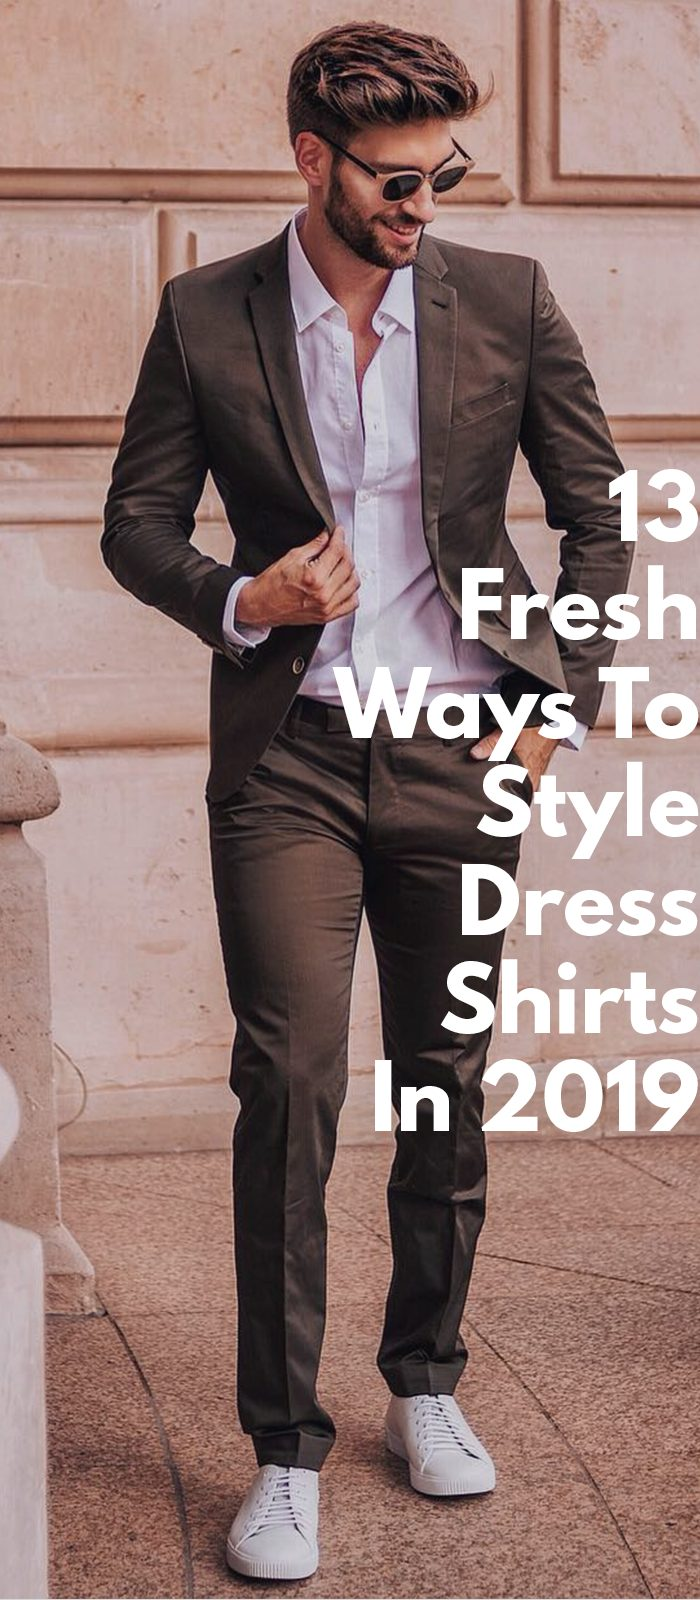 13 Dashing Dress Shirt For Men